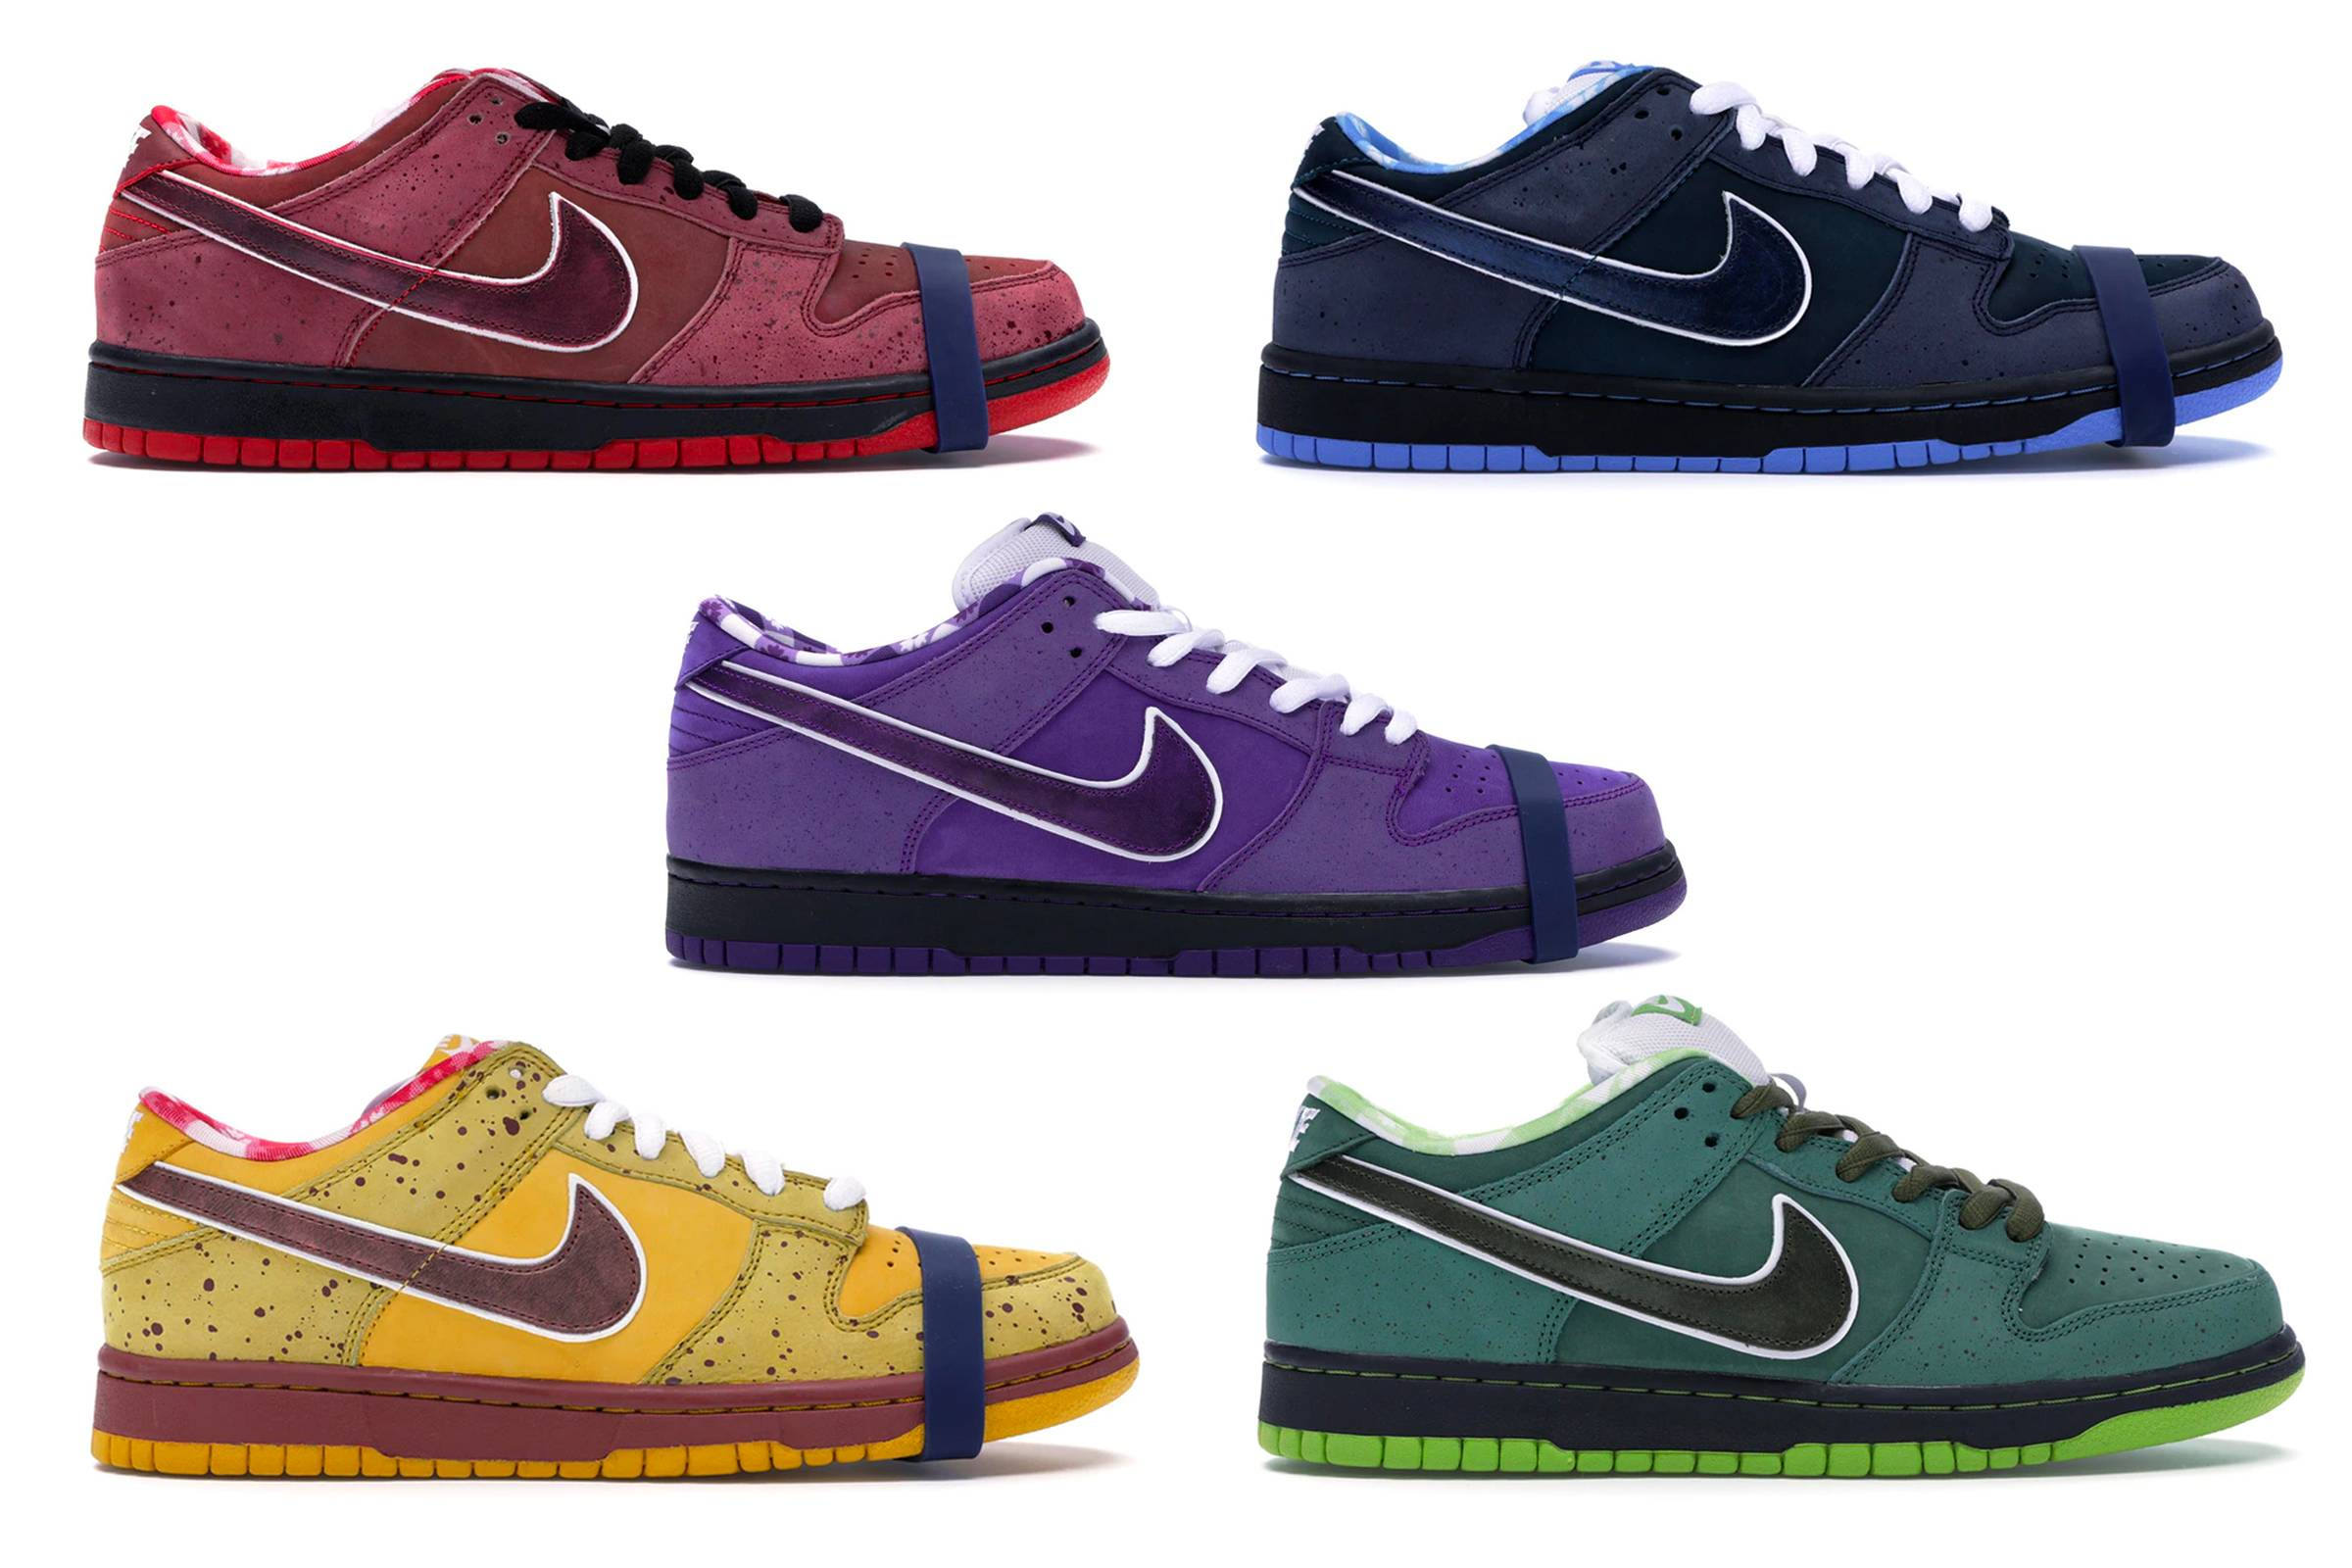 """Concepts x Nike SB Dunk Low """"Lobster"""" Series"""